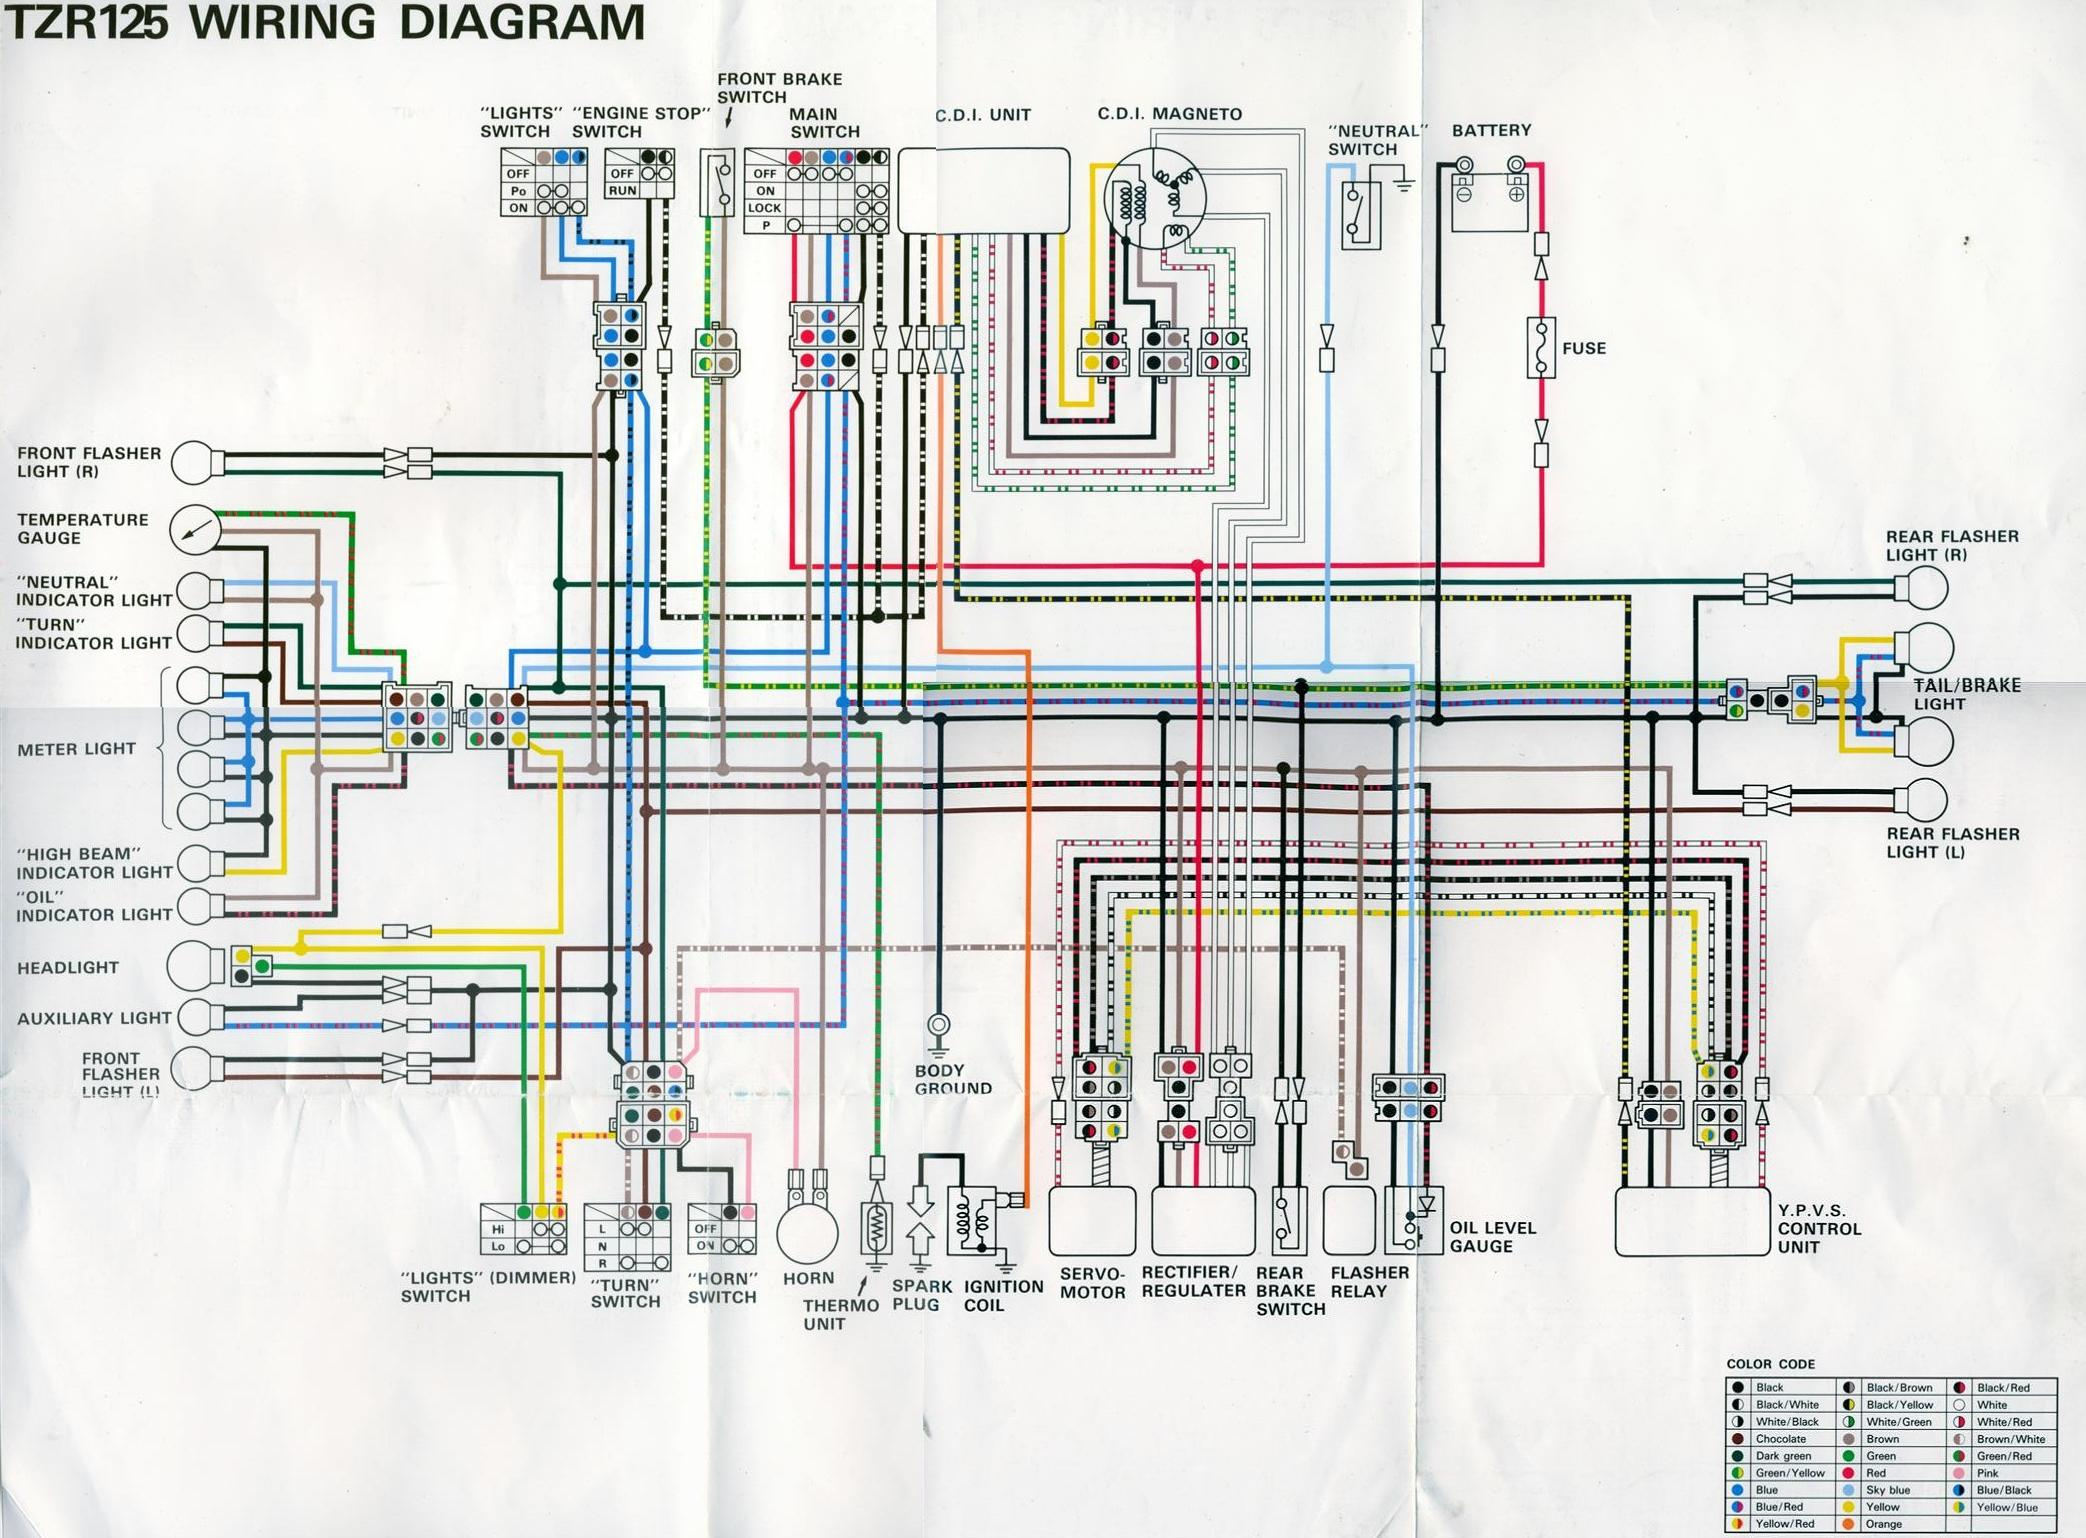 Yamaha Dt 125 R Wiring Diagram Electrical Diagrams Mini Bike Schematic Pdf Xz 550 Dj Unreals 2